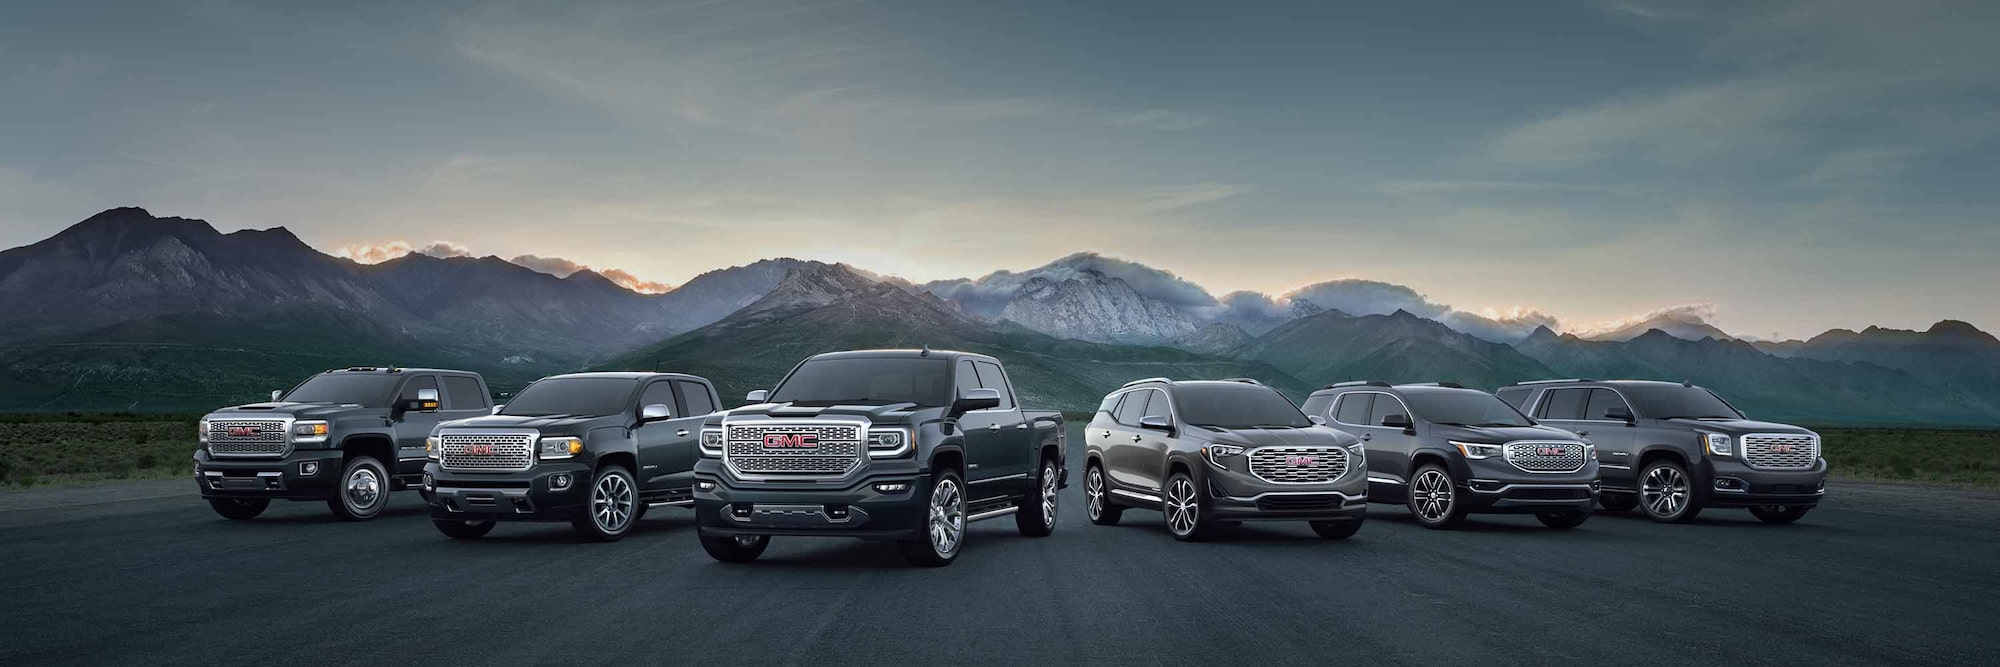 Trucks  SUVs  Crossovers    Vans   2018 GMC Lineup Explore the 2018 GMC Acadia mid size SUV